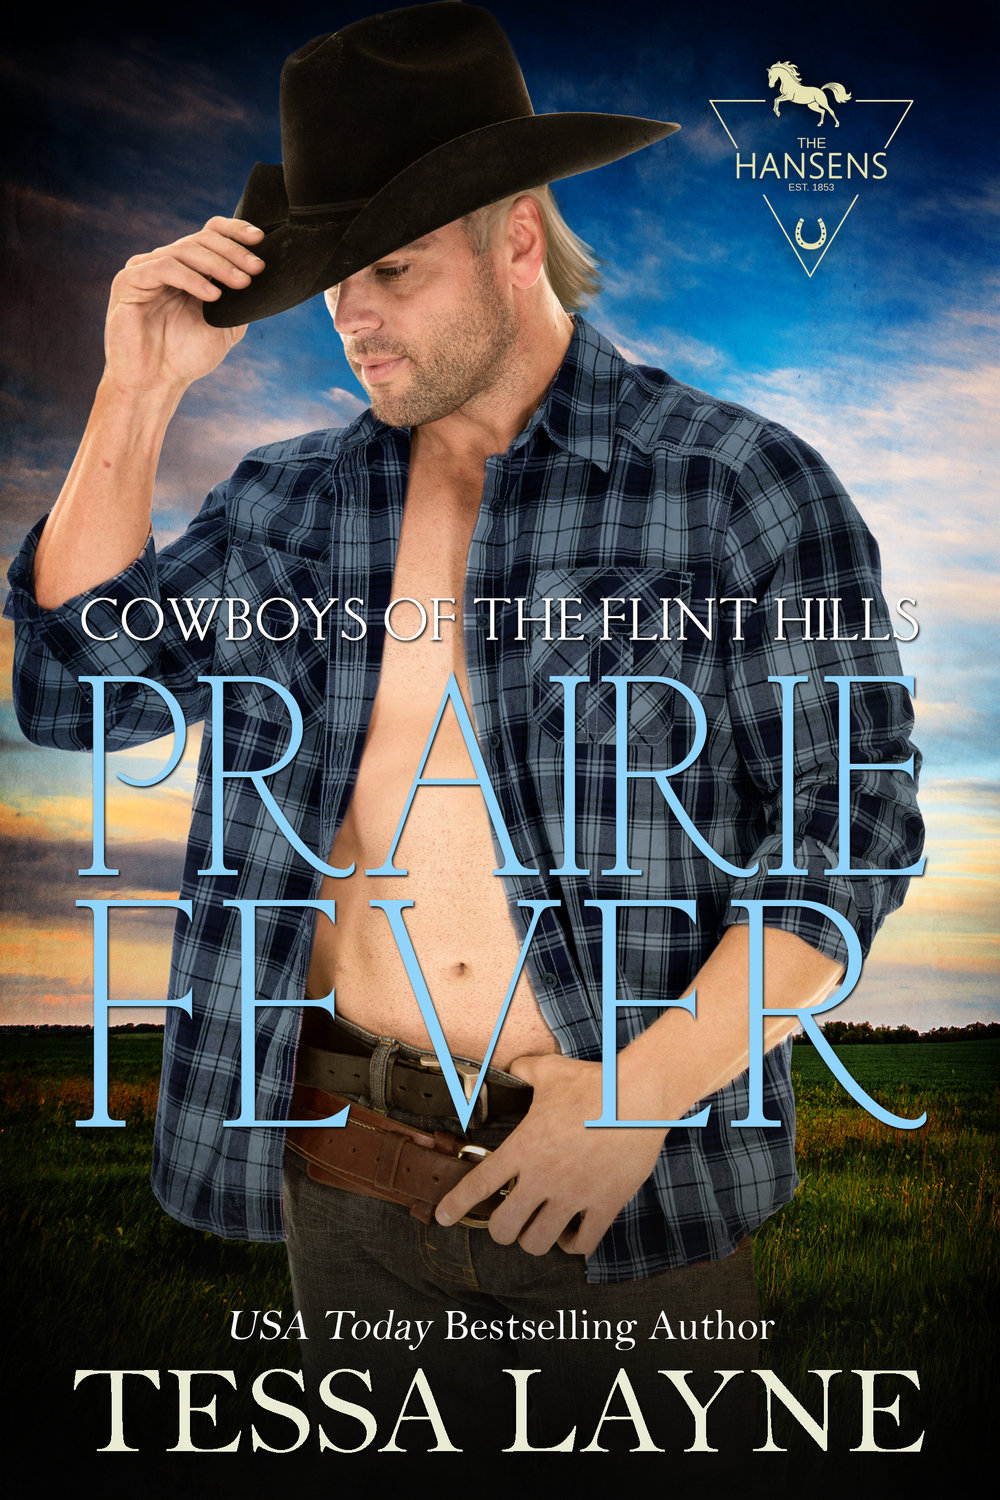 Prairie Fever - Hunky Gunnar Hansen is in for the shock of his life when he discovers that 'what happens in Vegas' doesn't stay in Vegas...Download HereKOBOIBOOKSNOOKGOOGLEKINDLEView the Cowboys of the Flint Hills series.